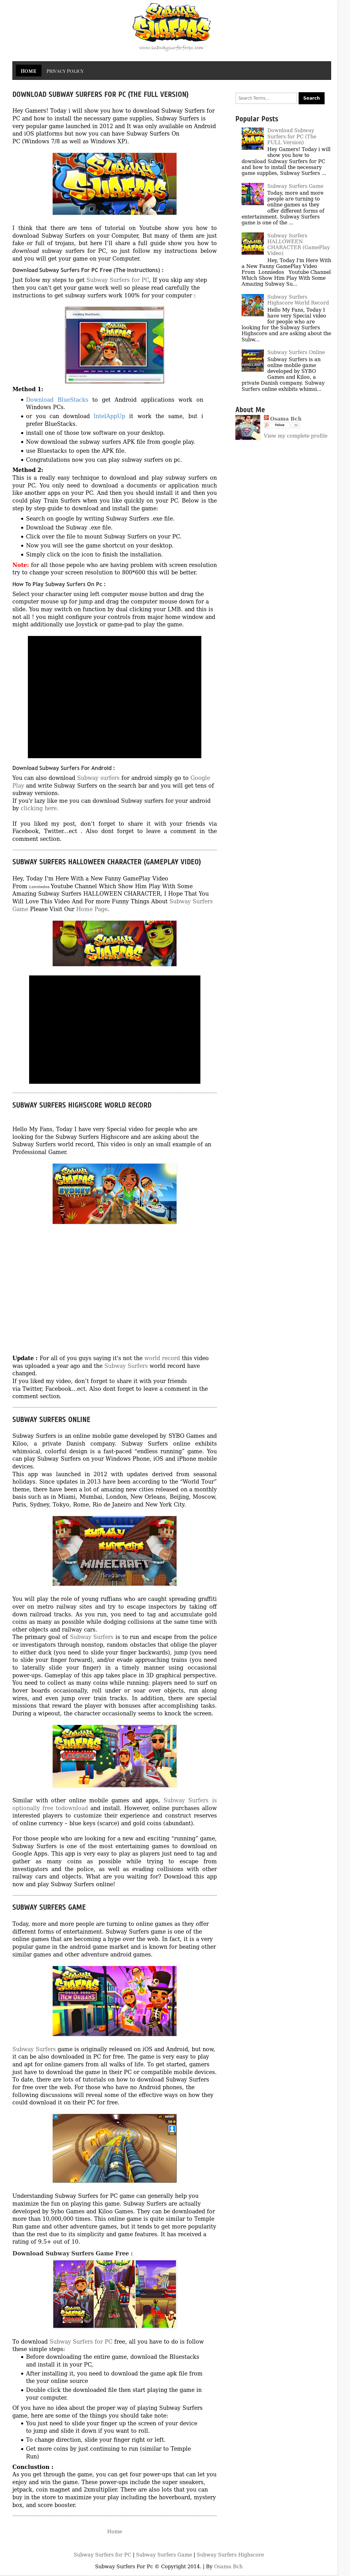 Subway Surfers For Pc Competitors, Revenue and Employees - Owler